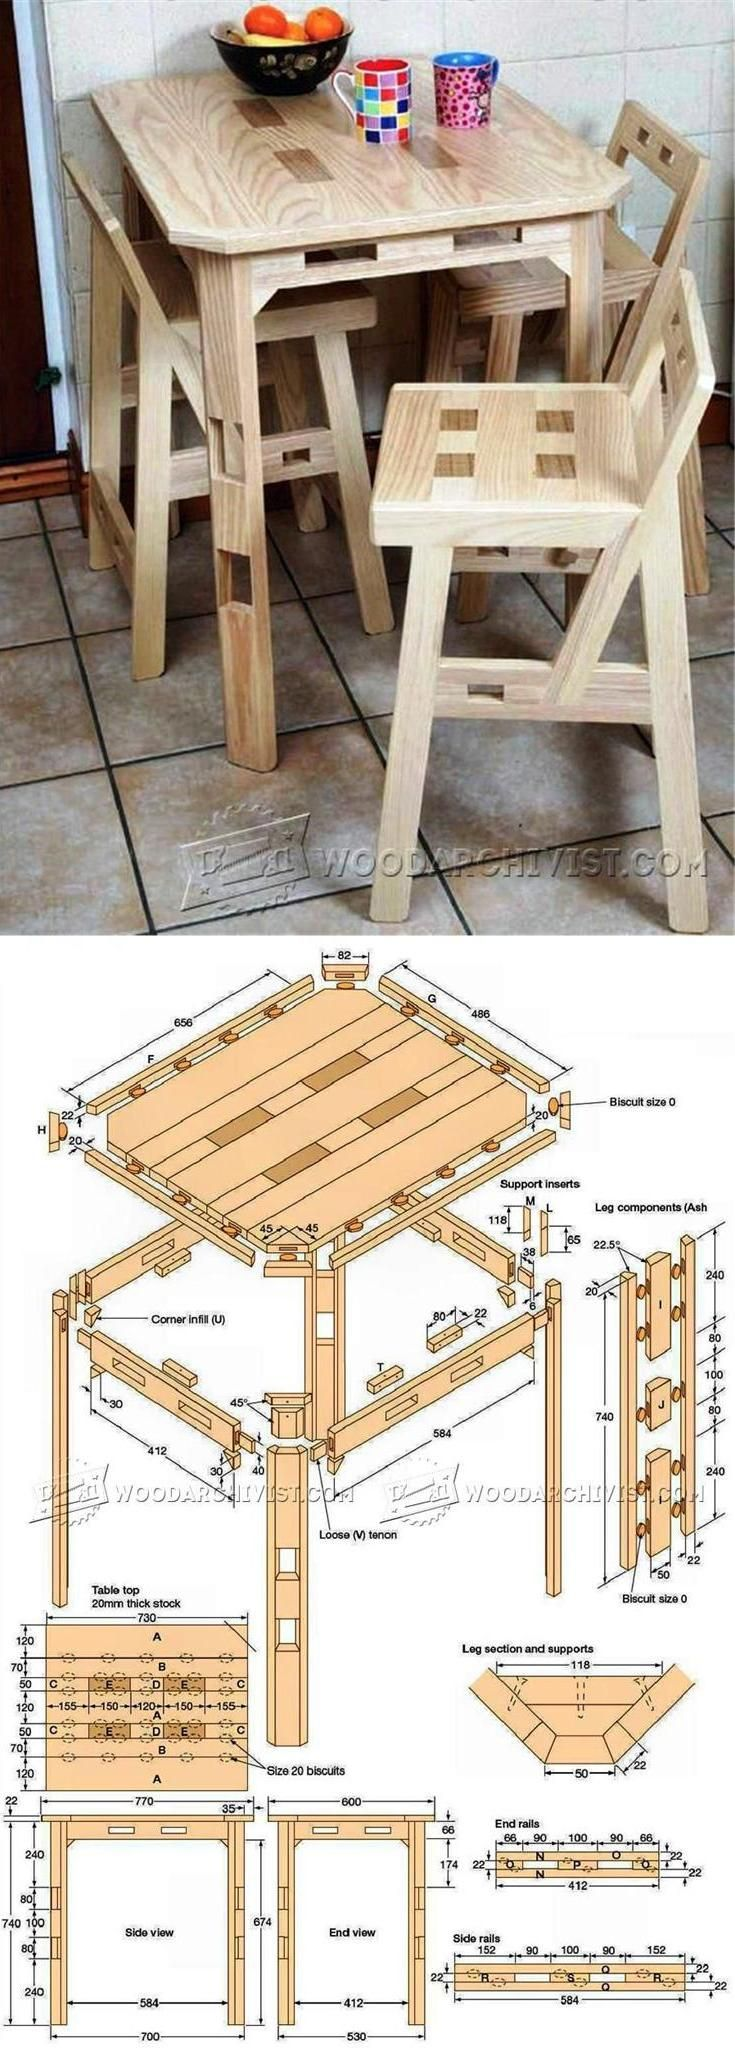 Library chair plans - Kitchen Table Plans Furniture Plans And Projects Woodarchivist Com